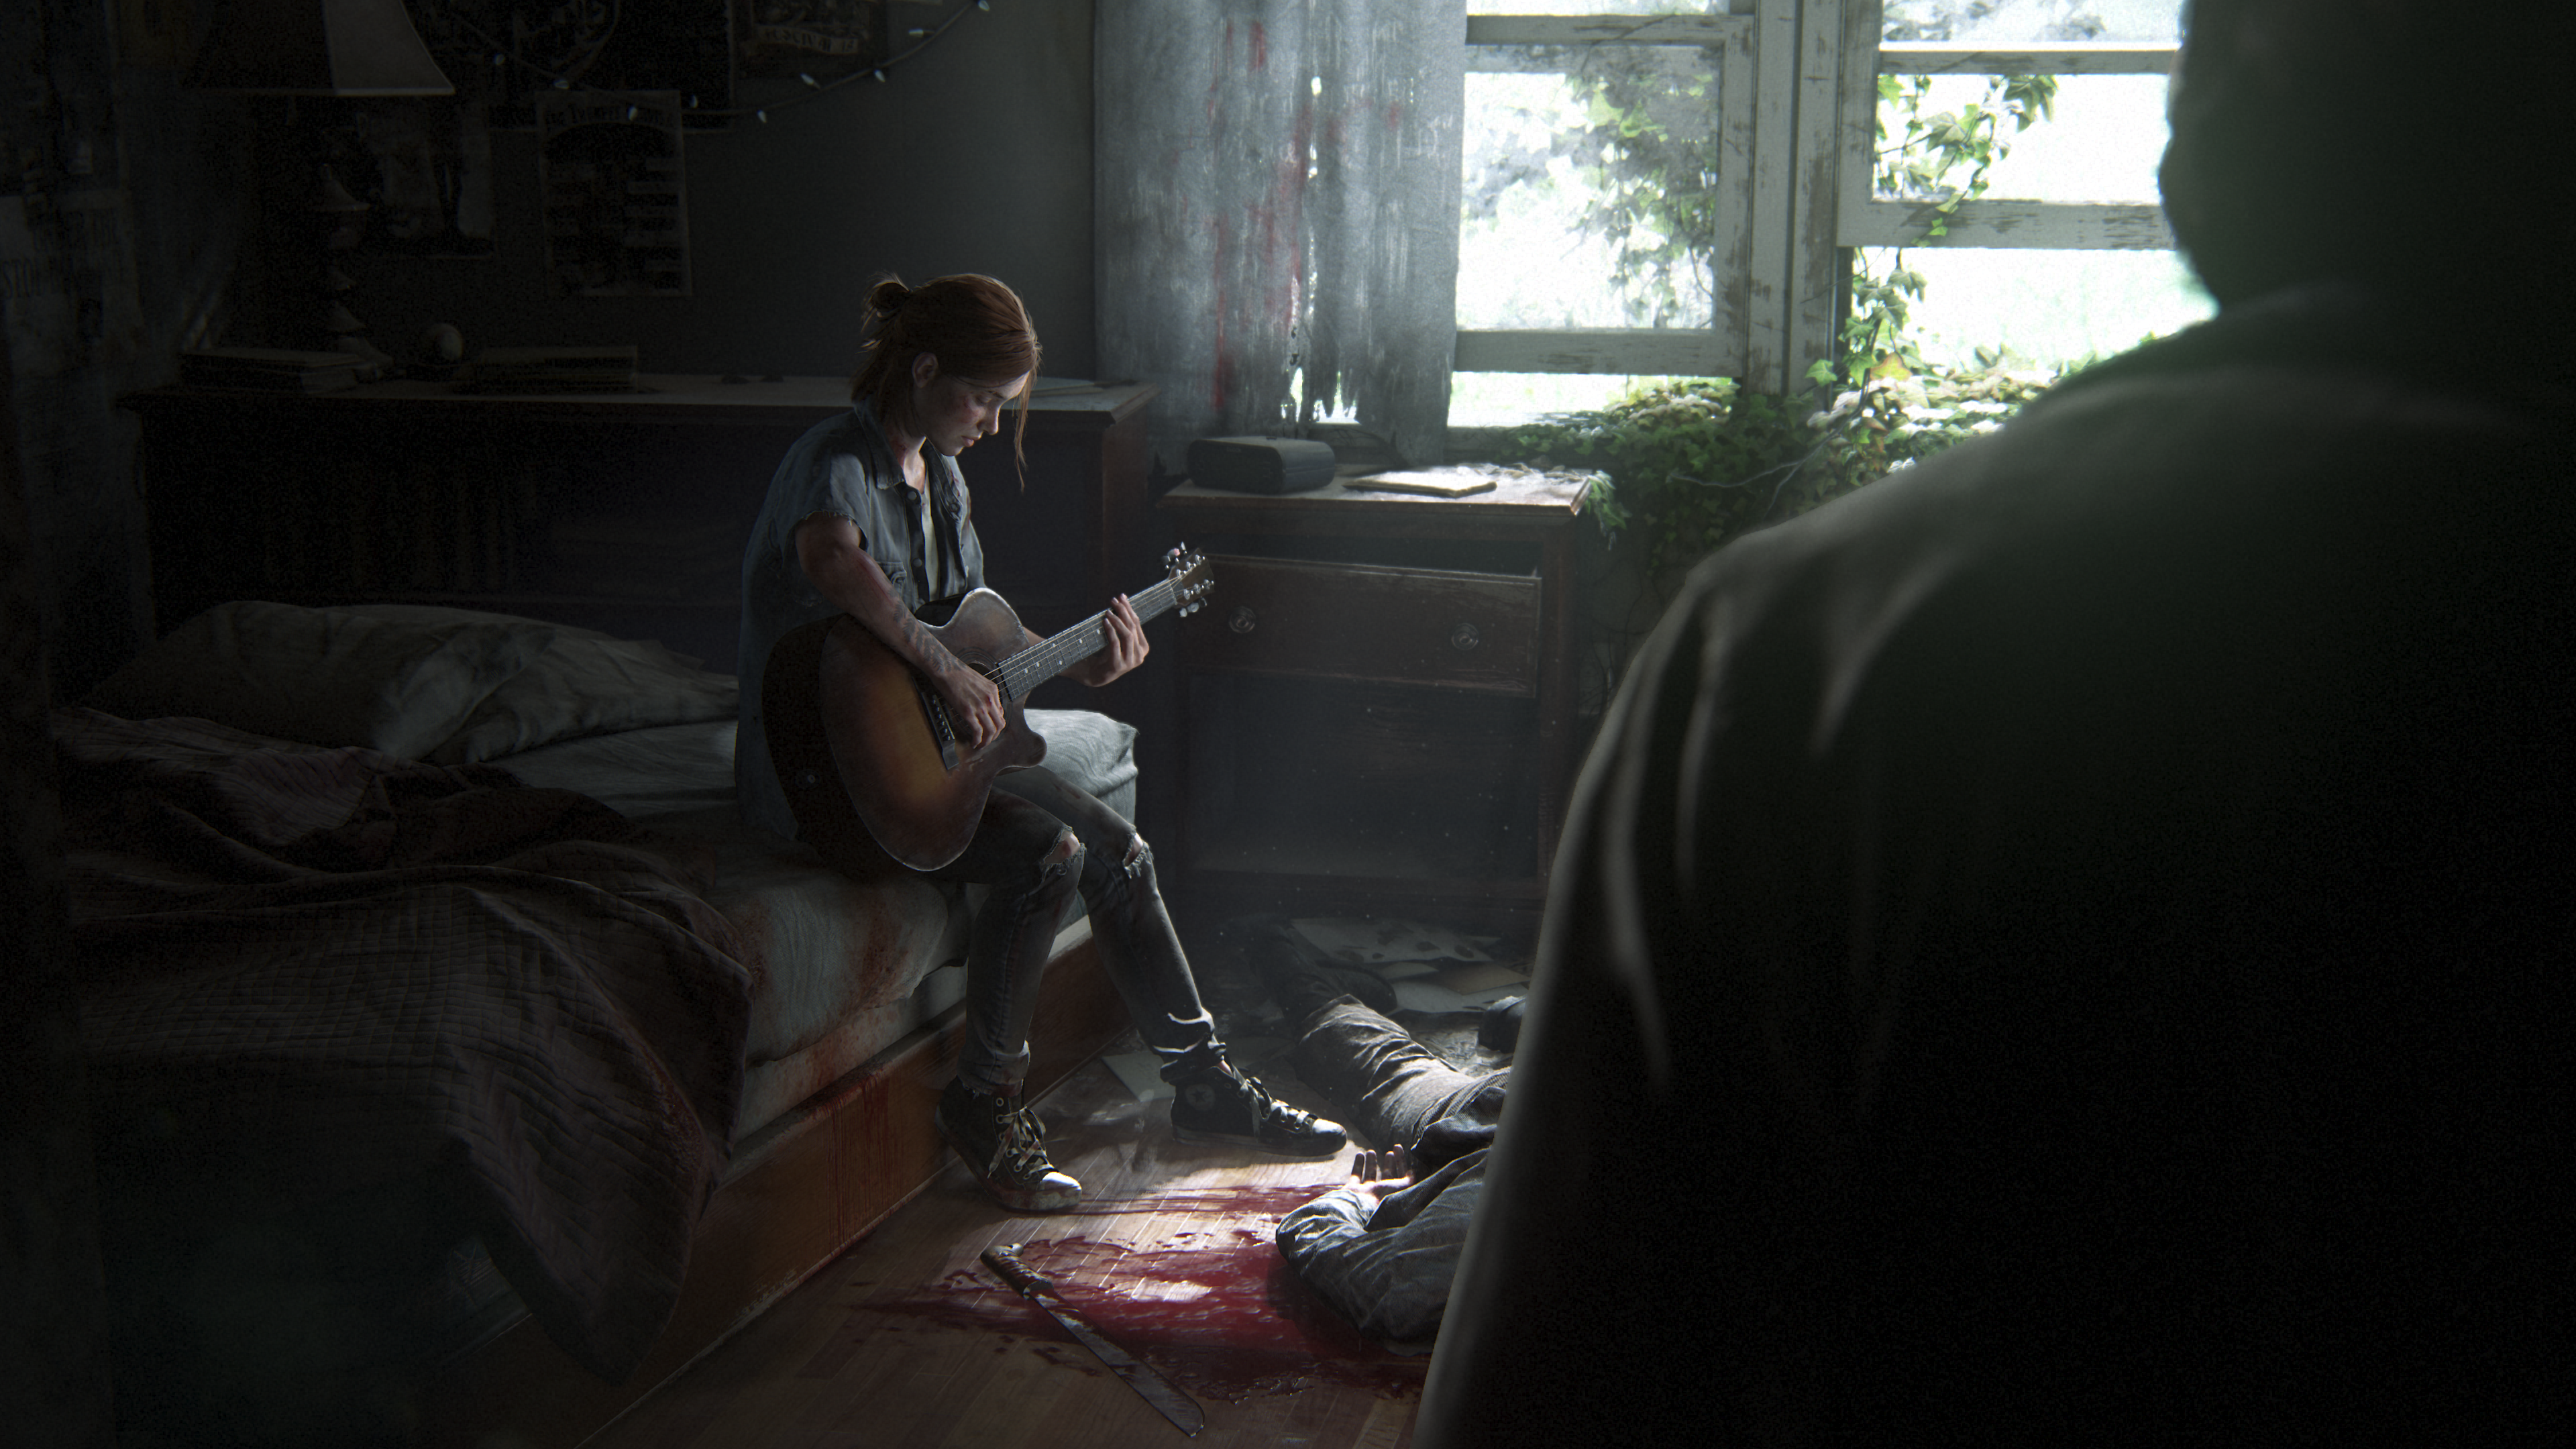 The Last of Us II. קשה, מדכא ואנושי להכאיב